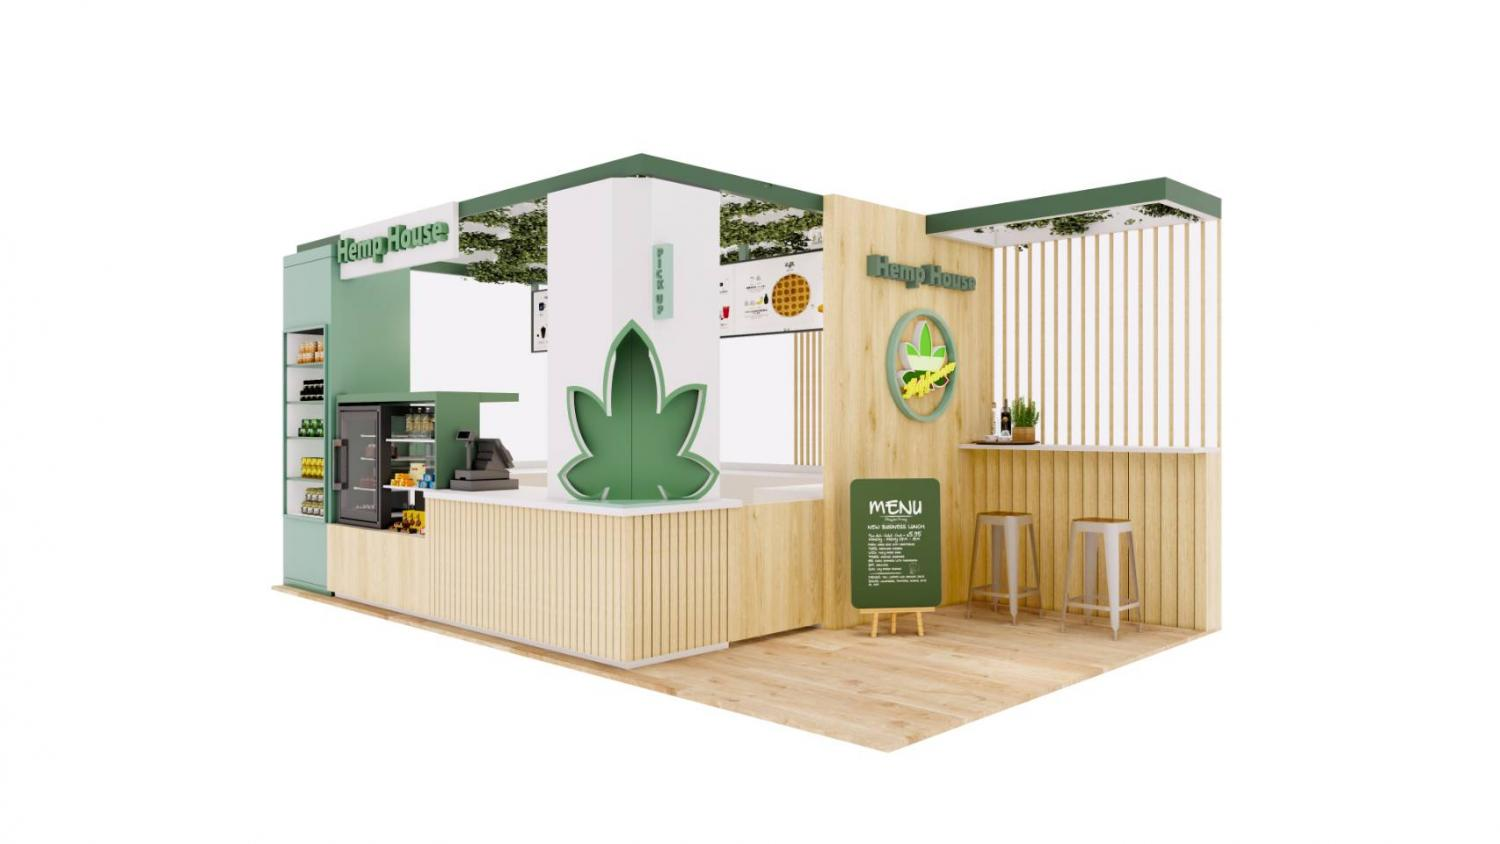 Hemp House outlets will feature hemp-based food and products. Operator, NR Instant Produce, is aiming to form a cafe-style hub under a franchise business model.